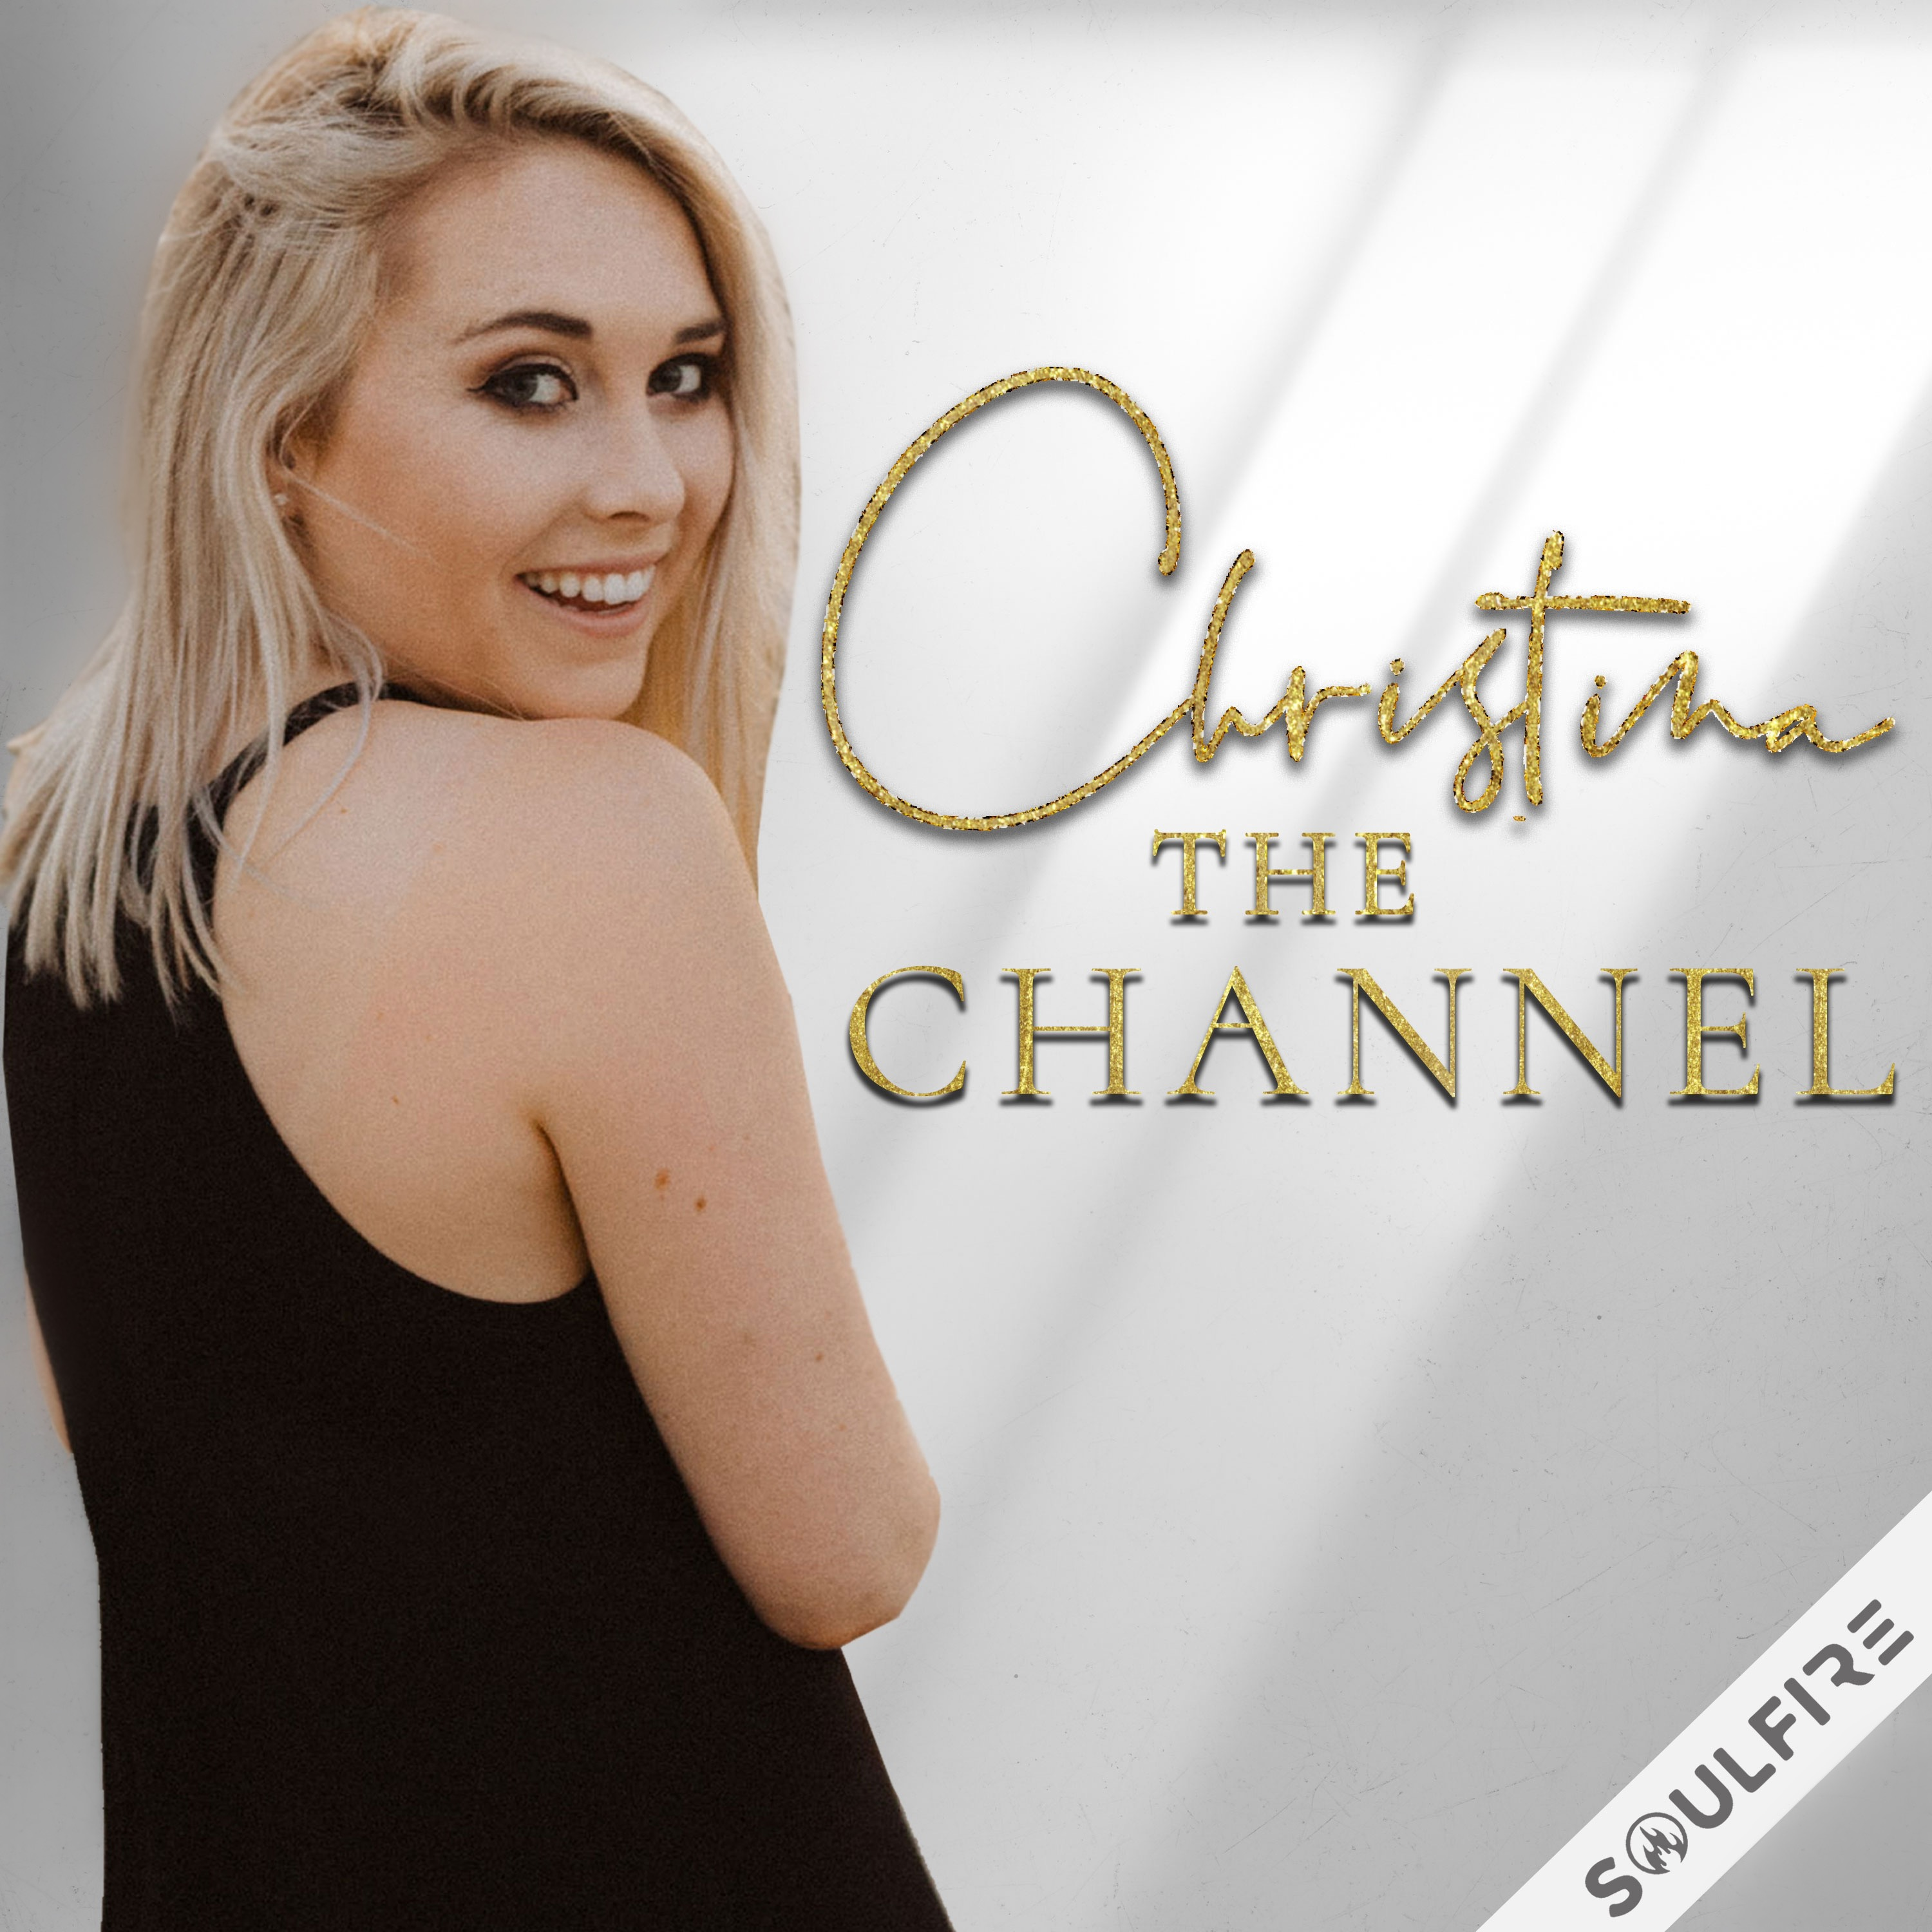 Christina the Channel